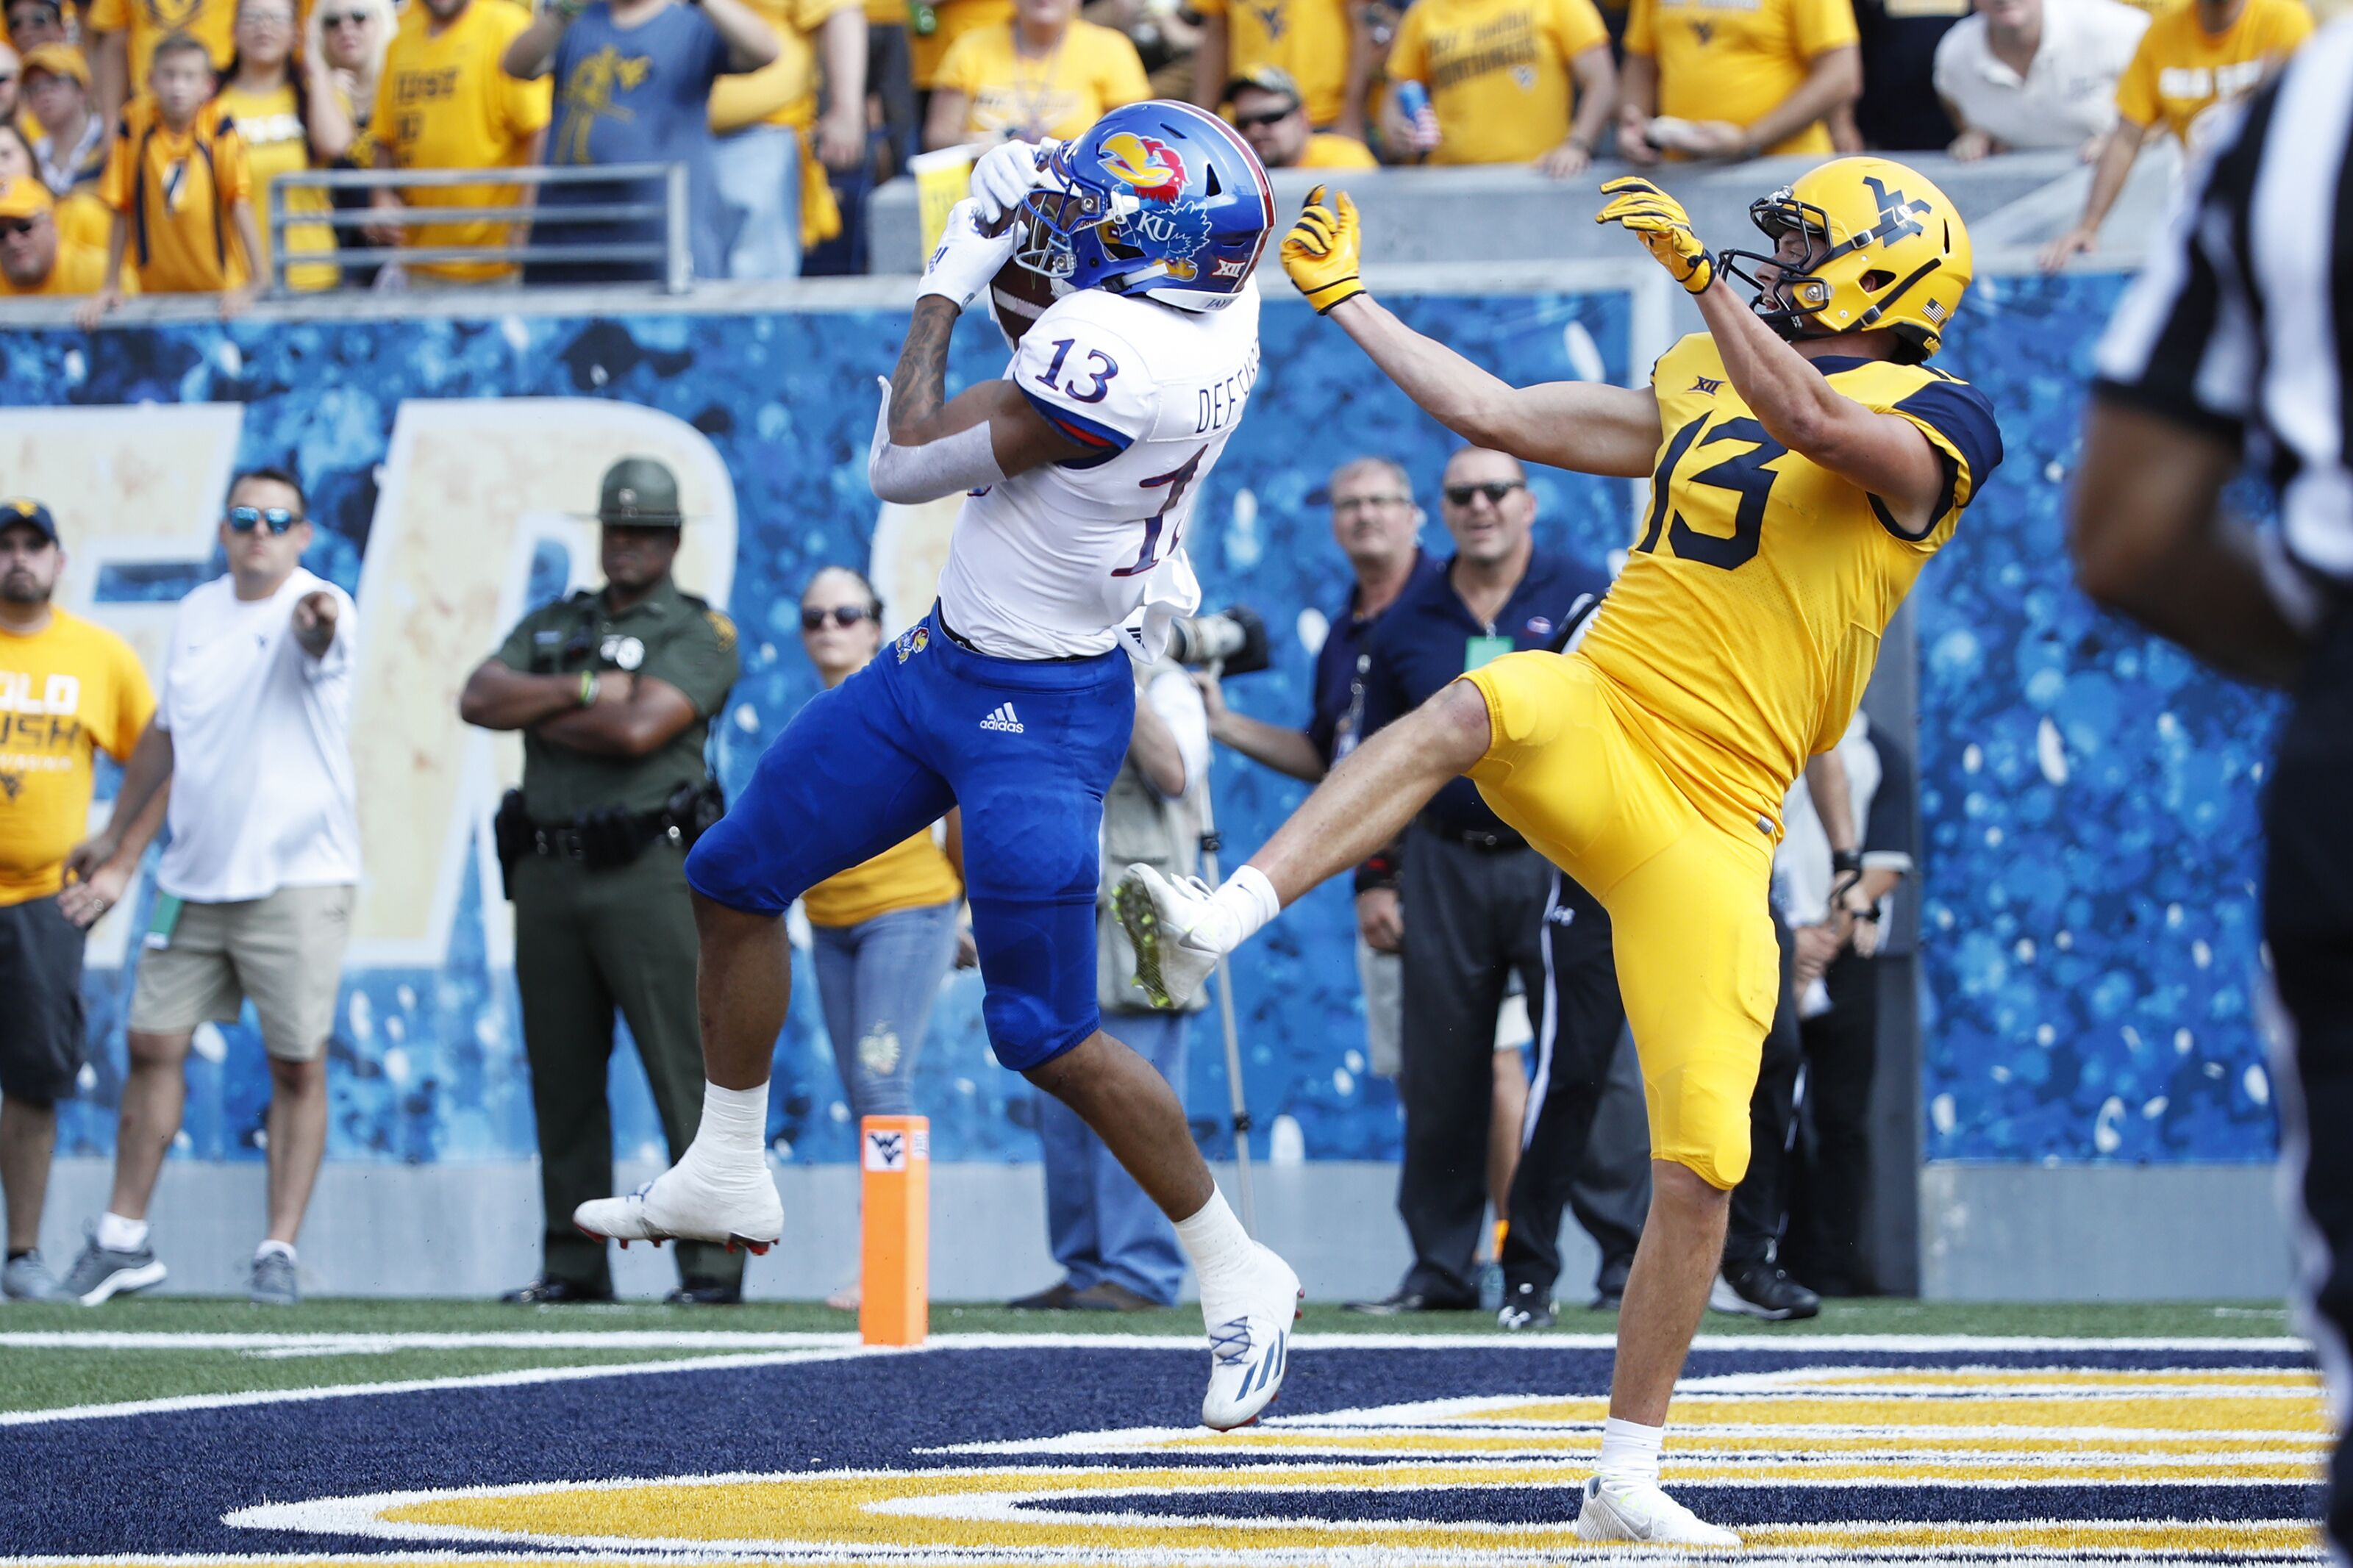 Kansas football vs. West Virginia – Preview and Prediction